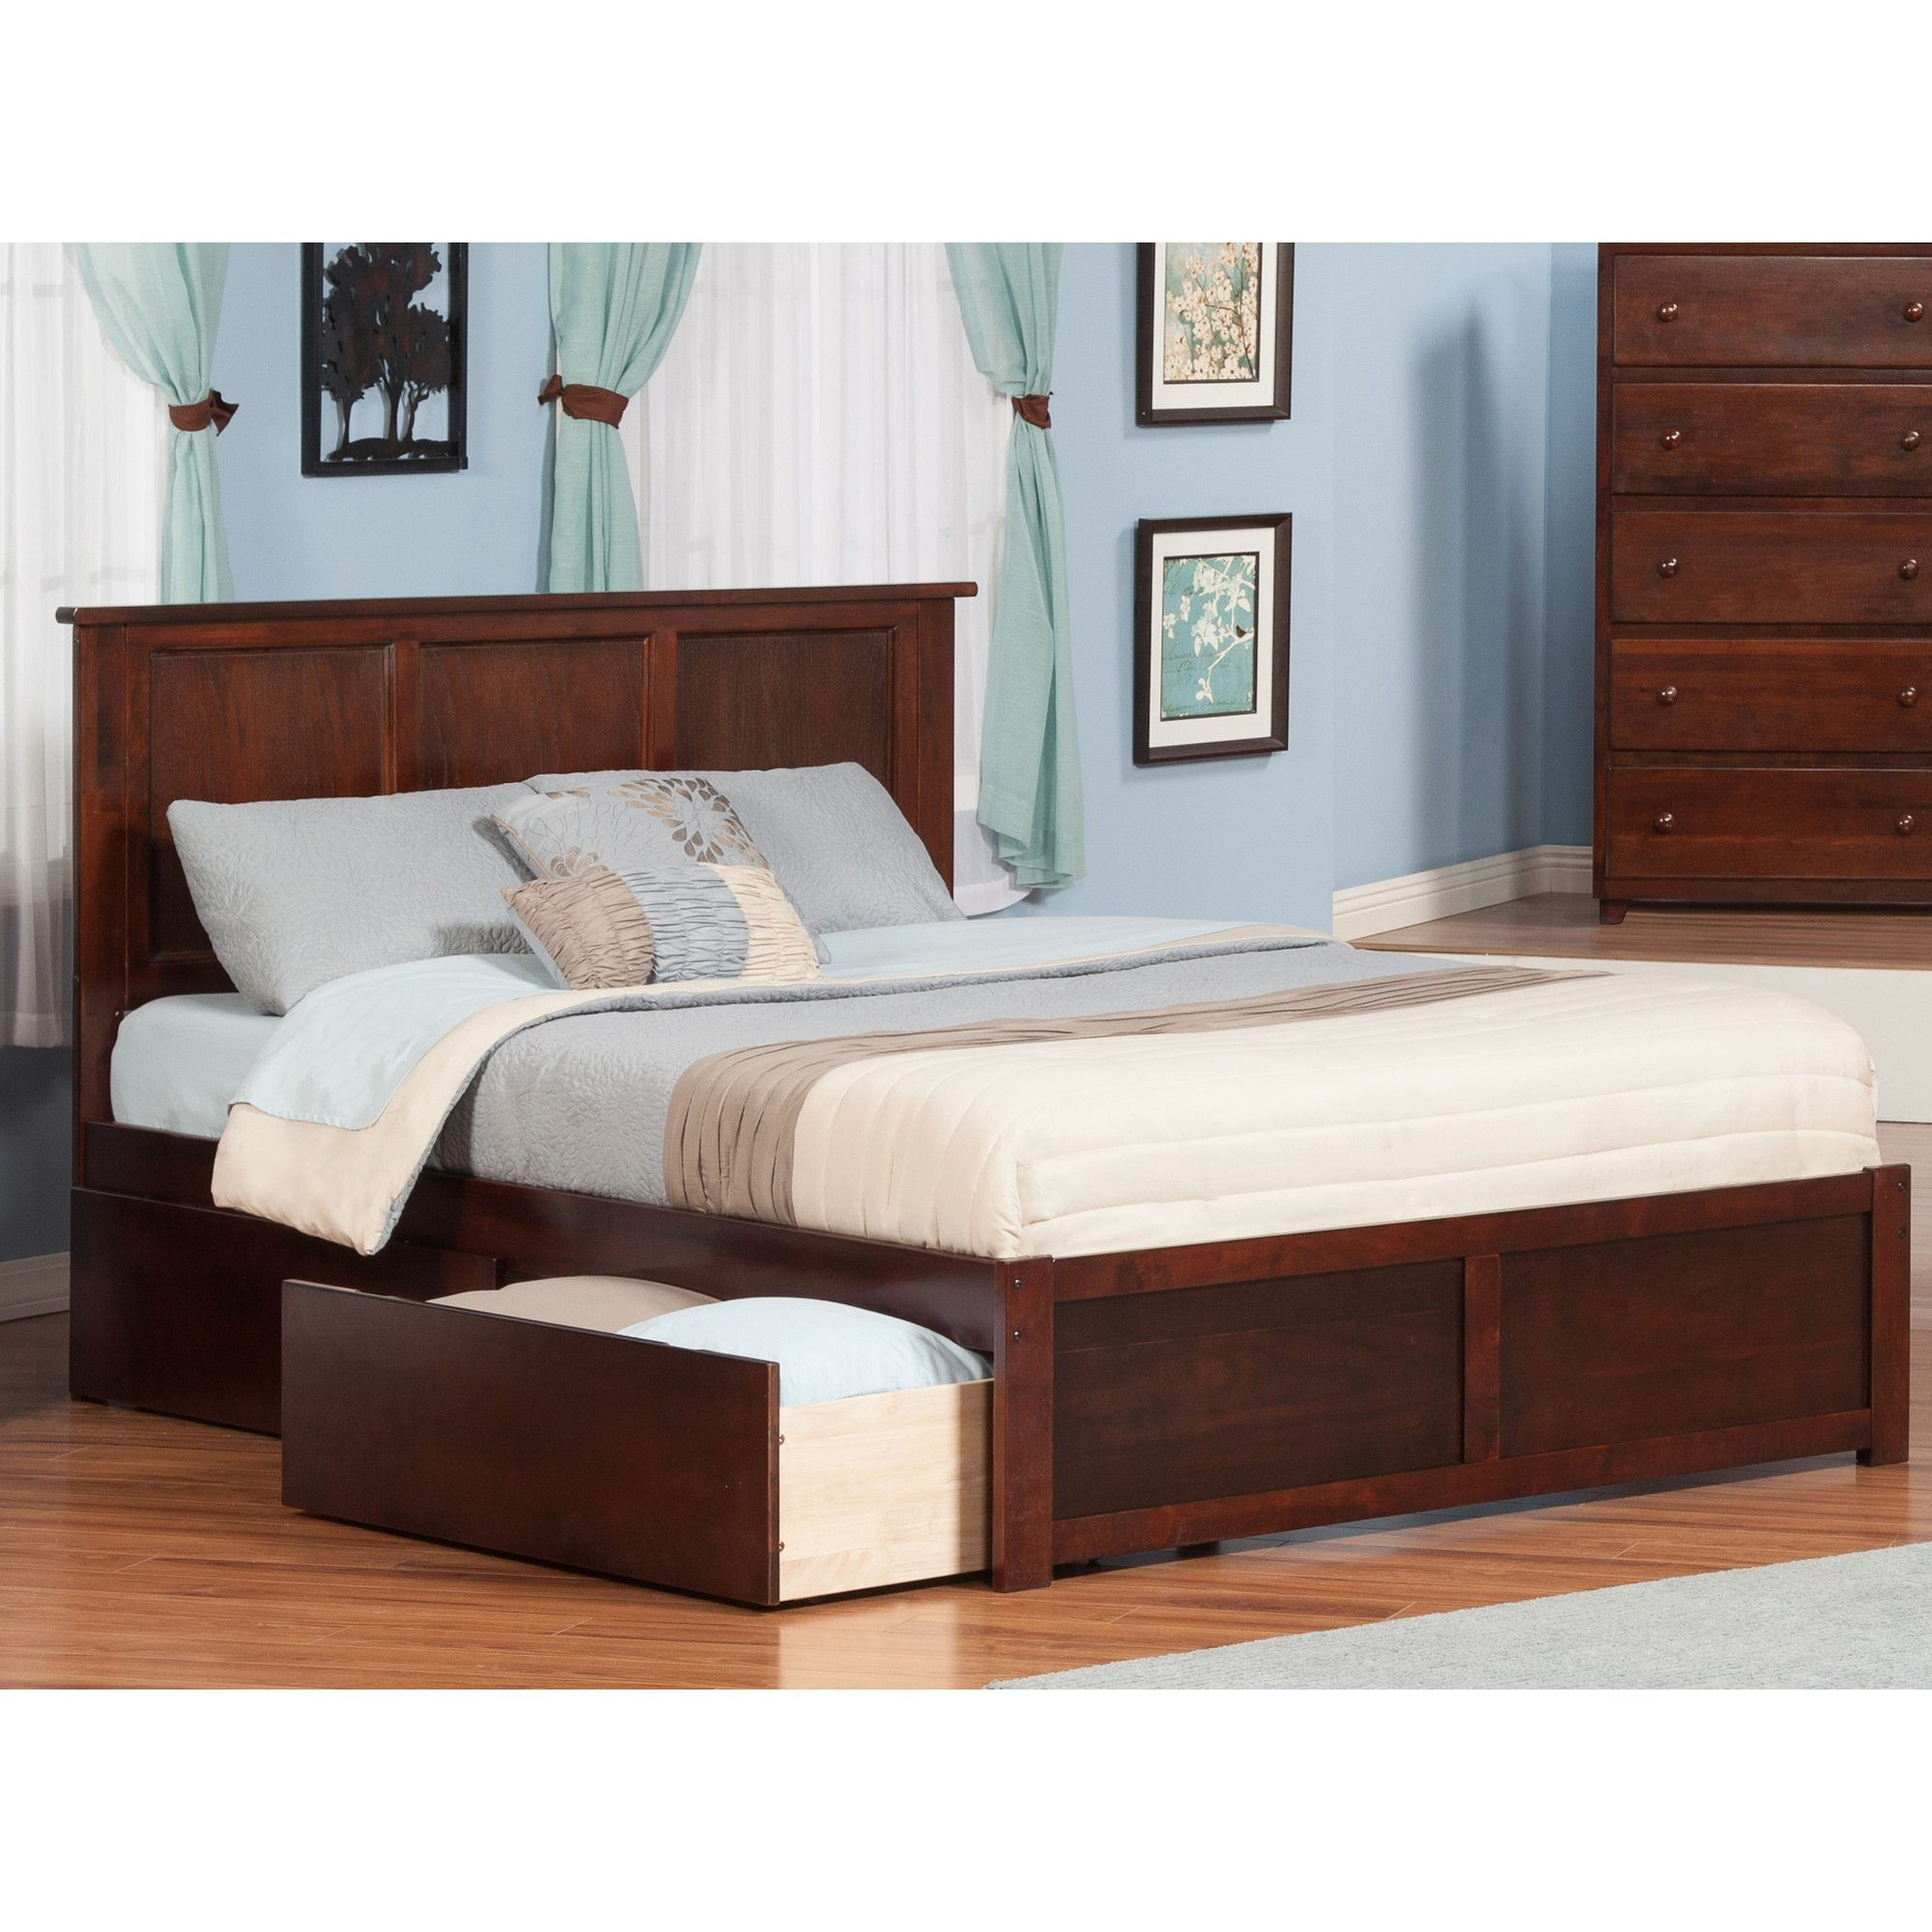 Atlantic furniture madison king storage panel bed cool house decor